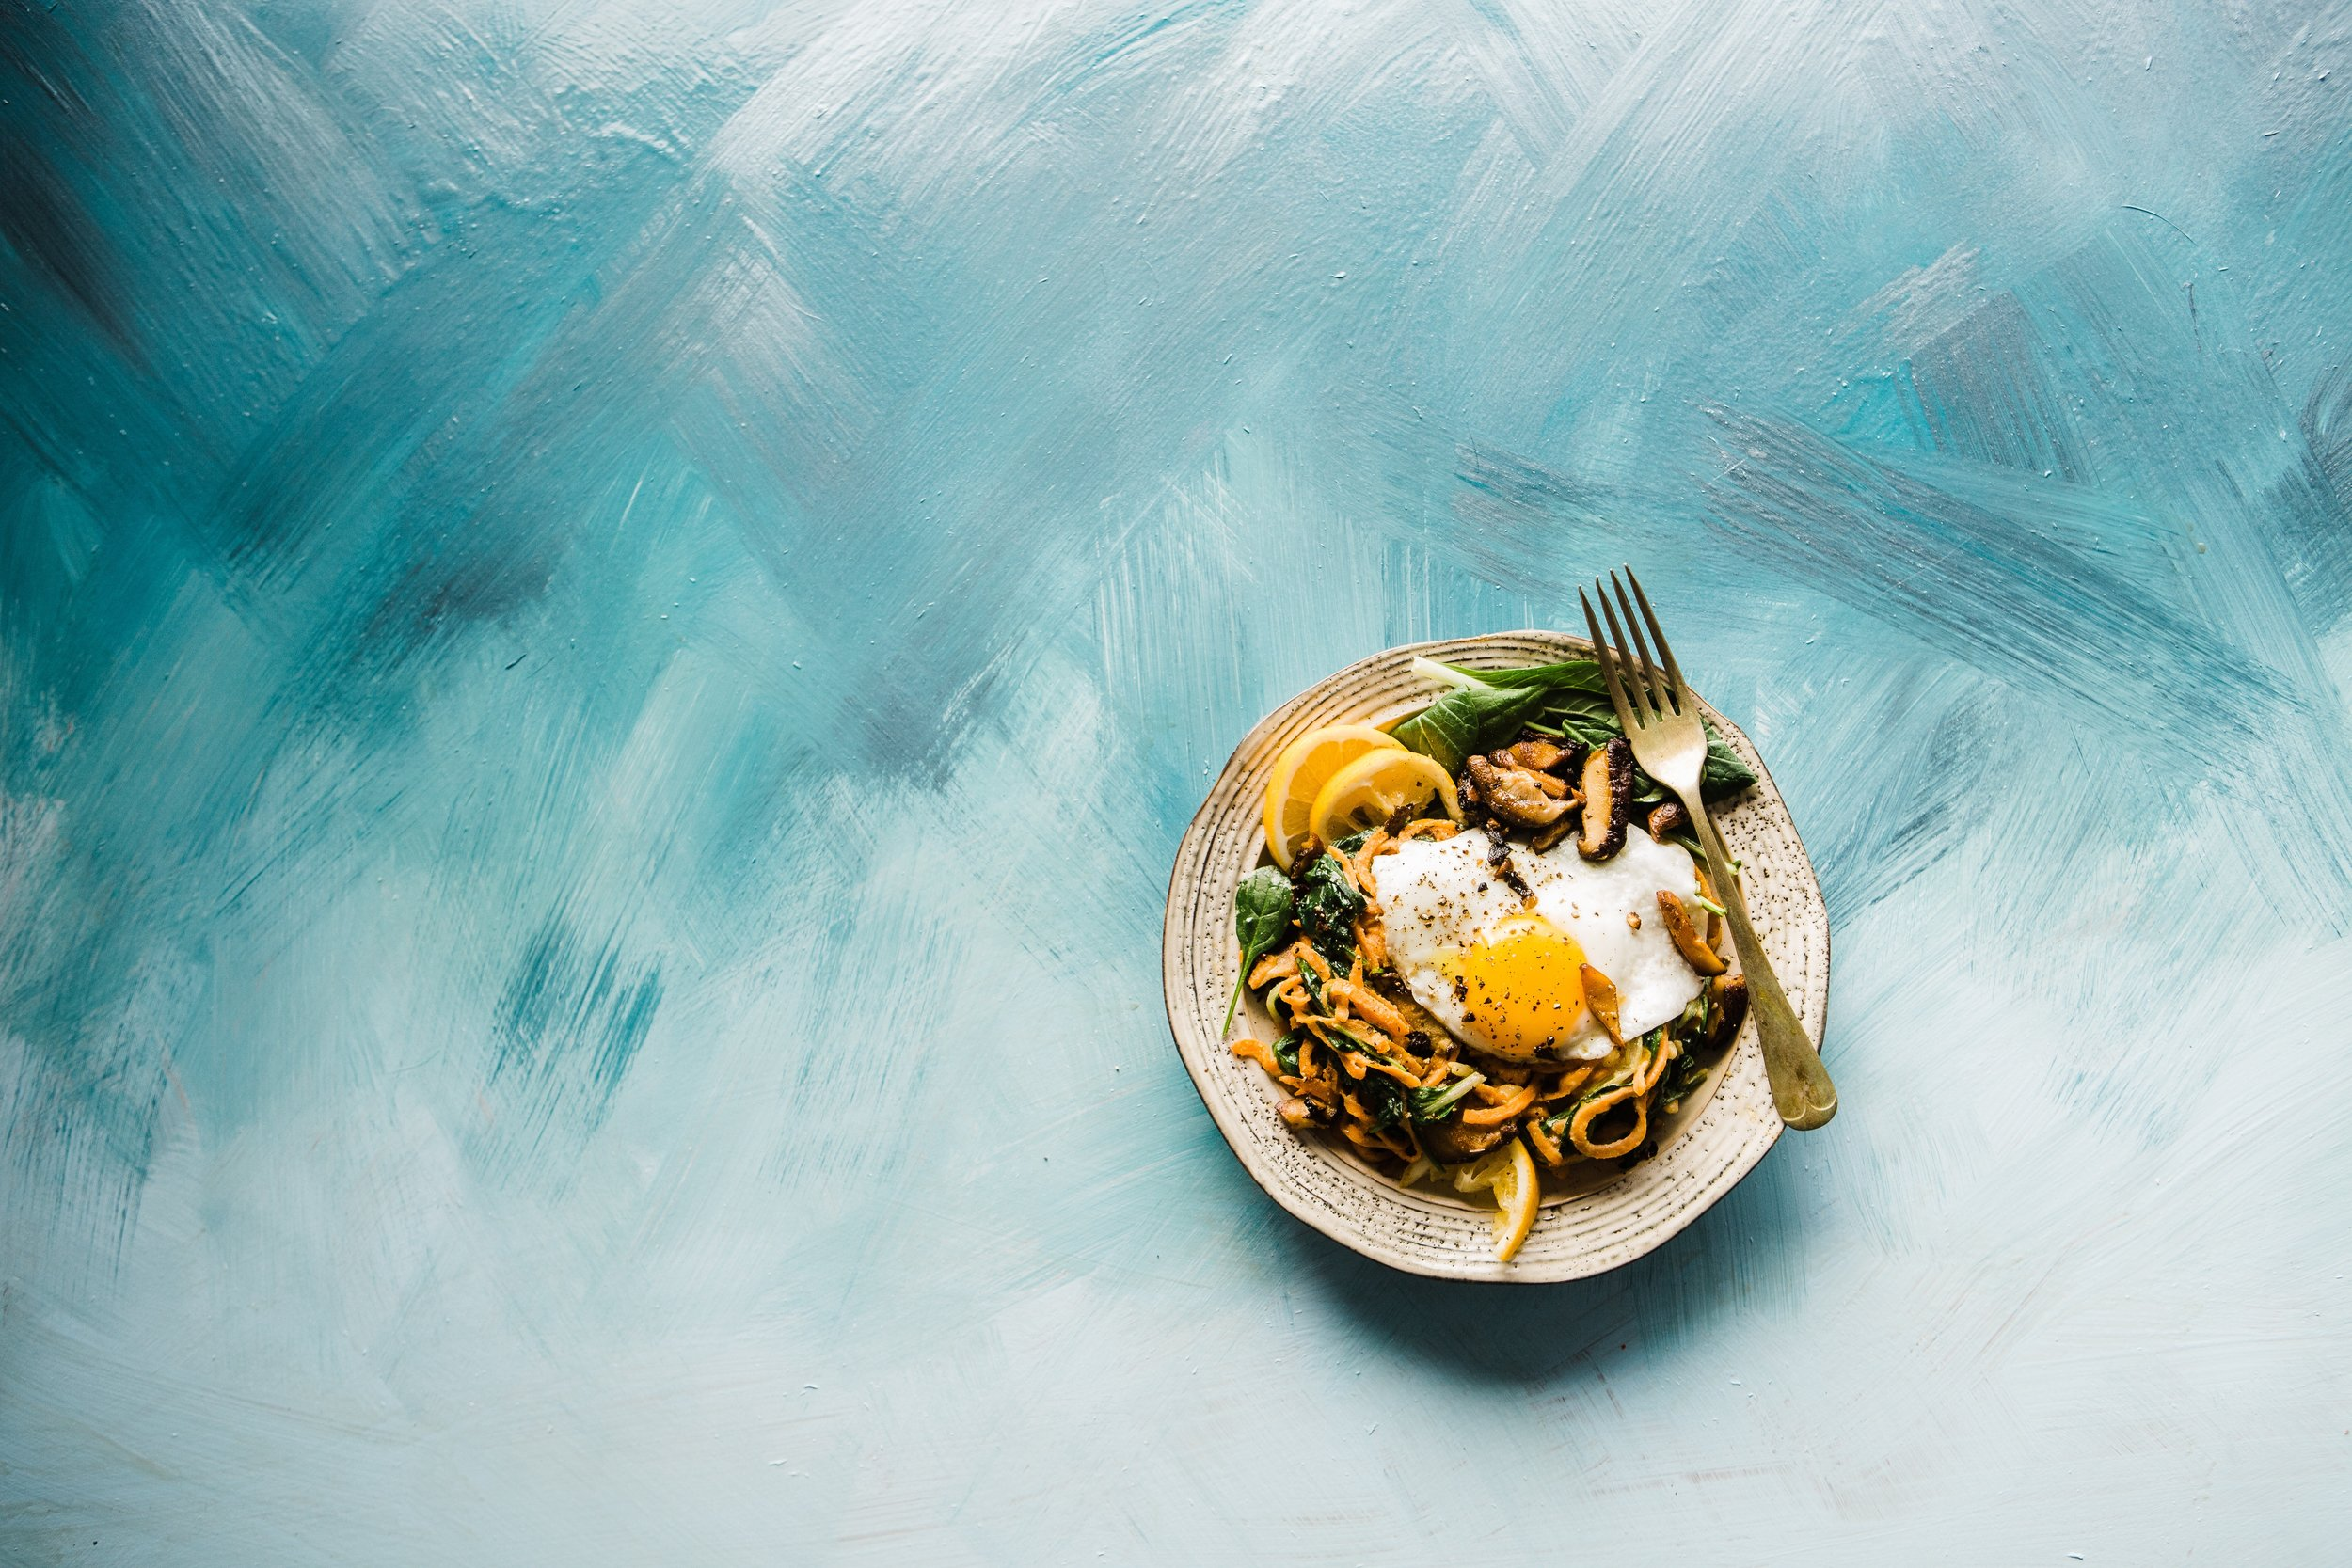 [Image: Round plate with egg, noodles, oranges, and vegetables on a turquoise and grey background.]